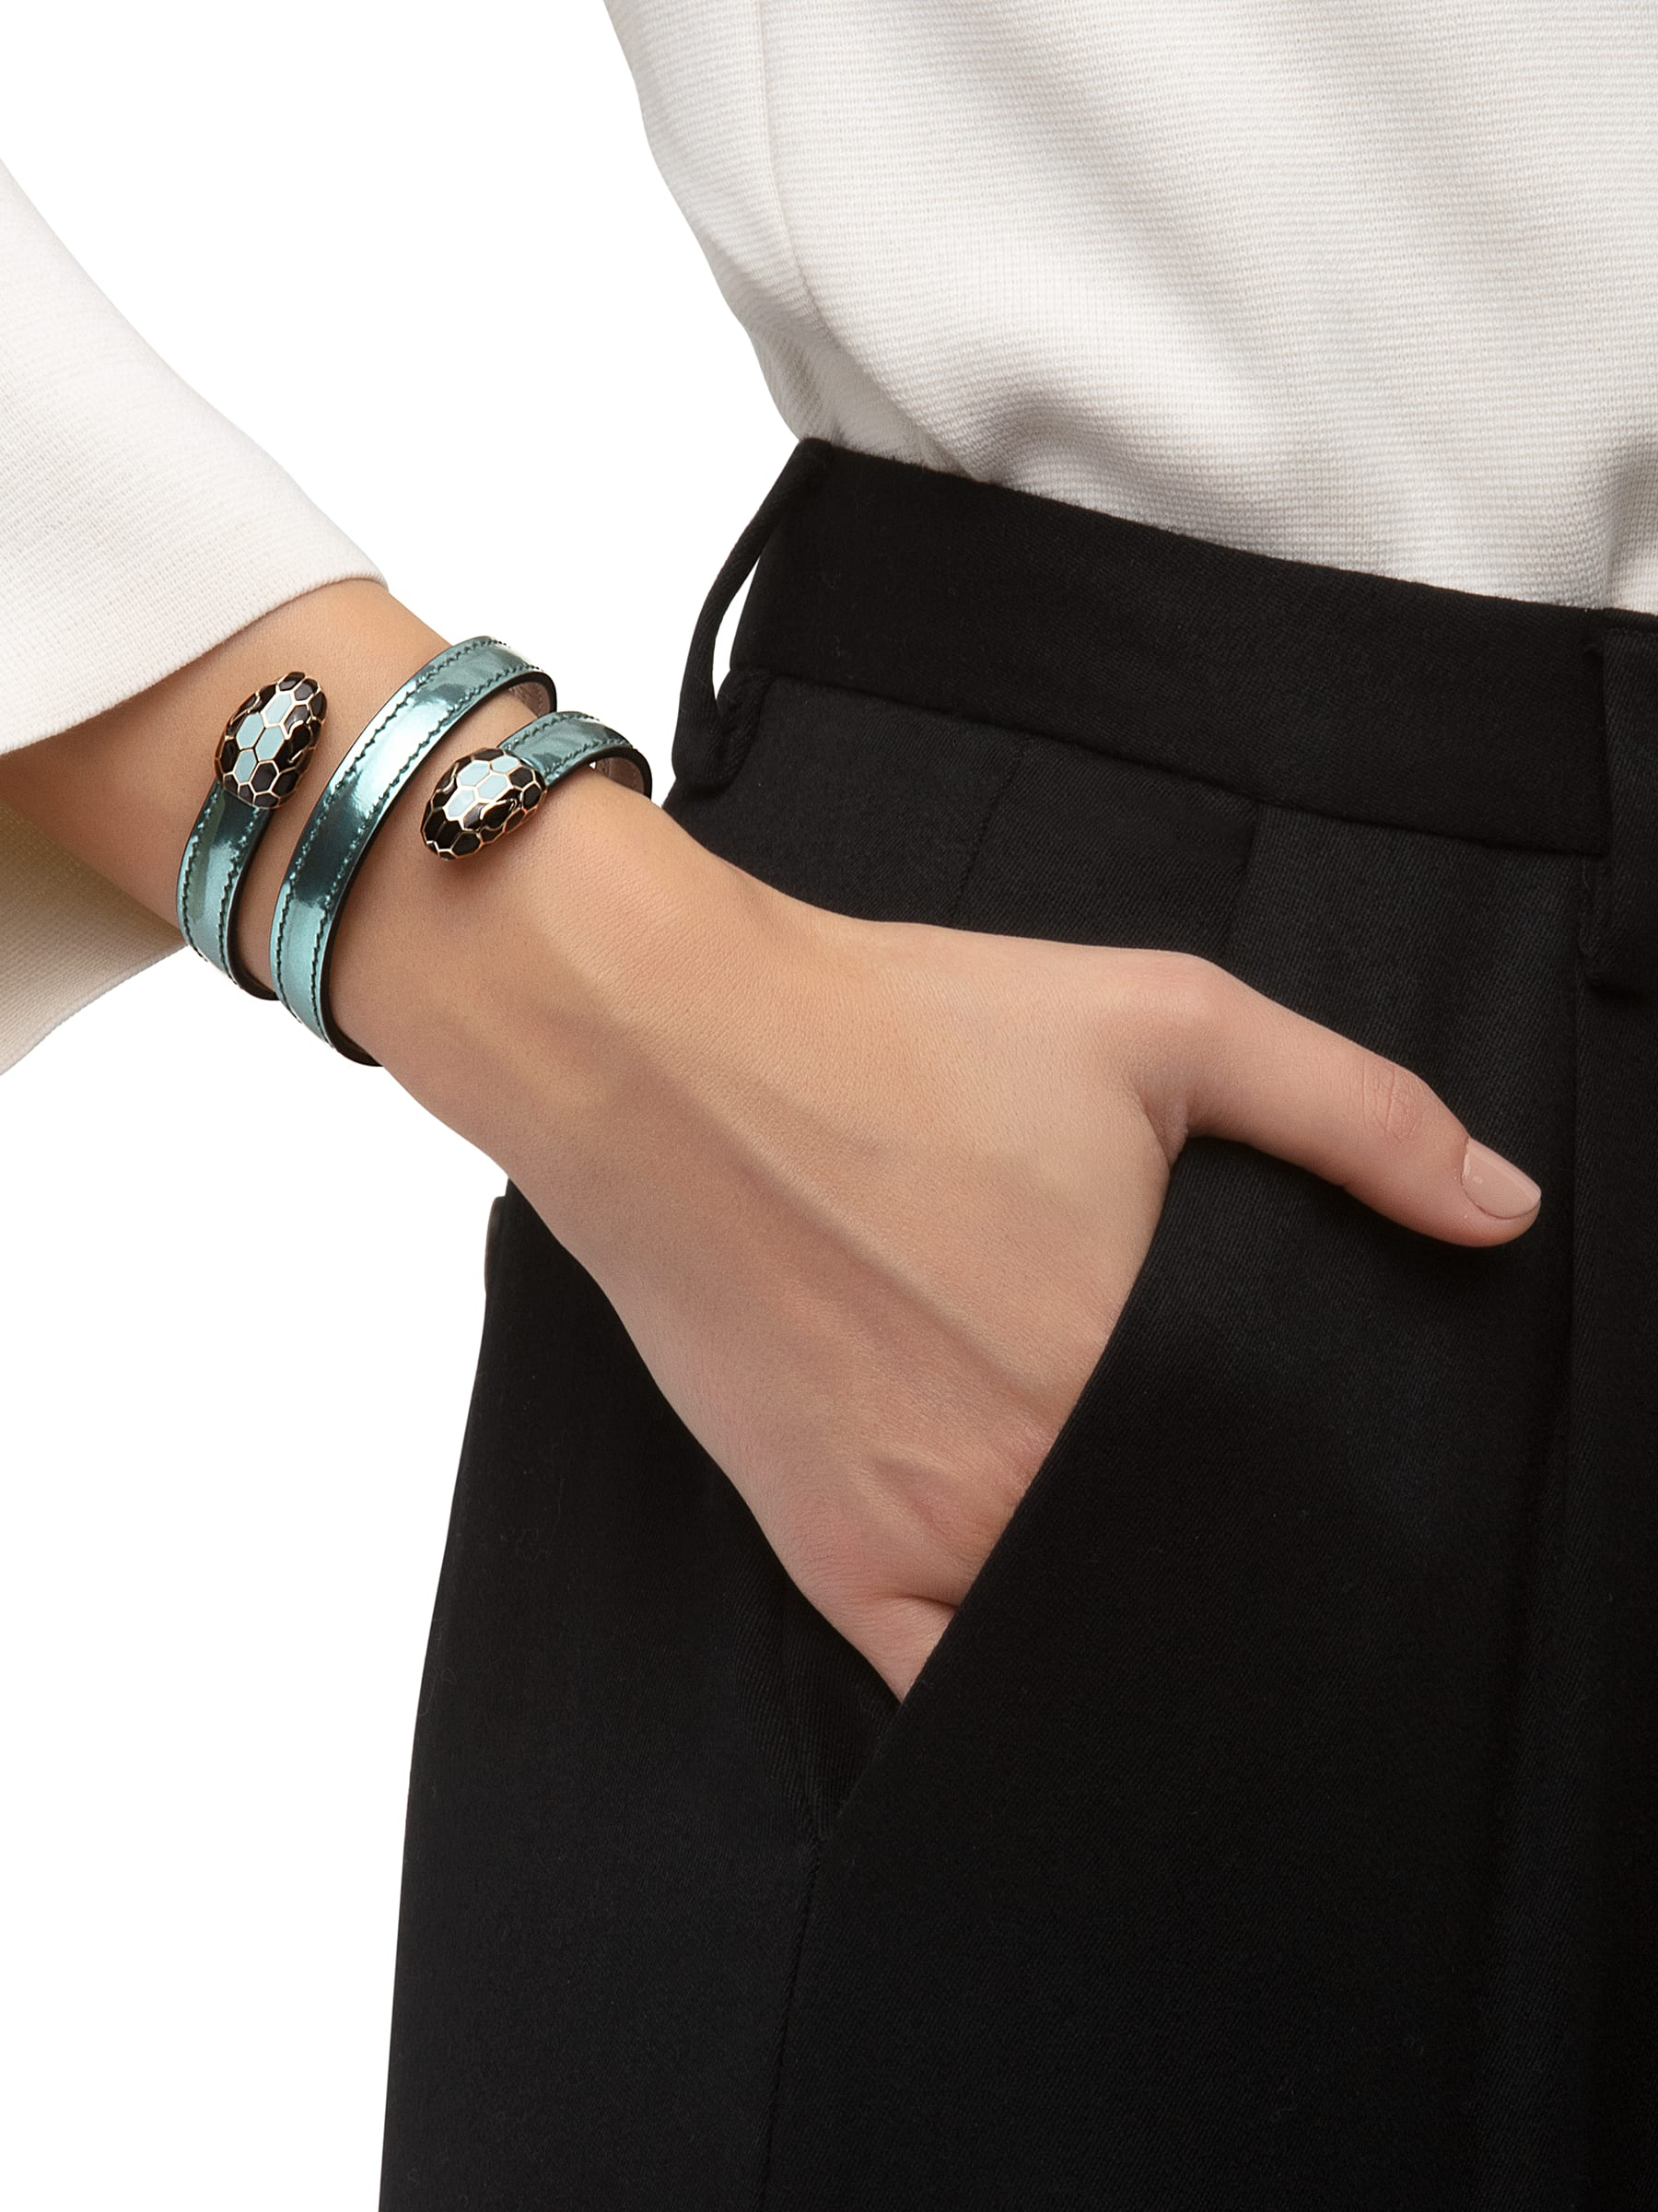 Serpenti Forever multi-coiled rigid Cleopatra bracelet in glacier turquoise brushed metallic calf leather, with brass light gold plated hardware. Iconic double snakehead décor in black and glacier turquoise enamel, with black enamel eyes. Cleopatra-BMCL-GT image 2